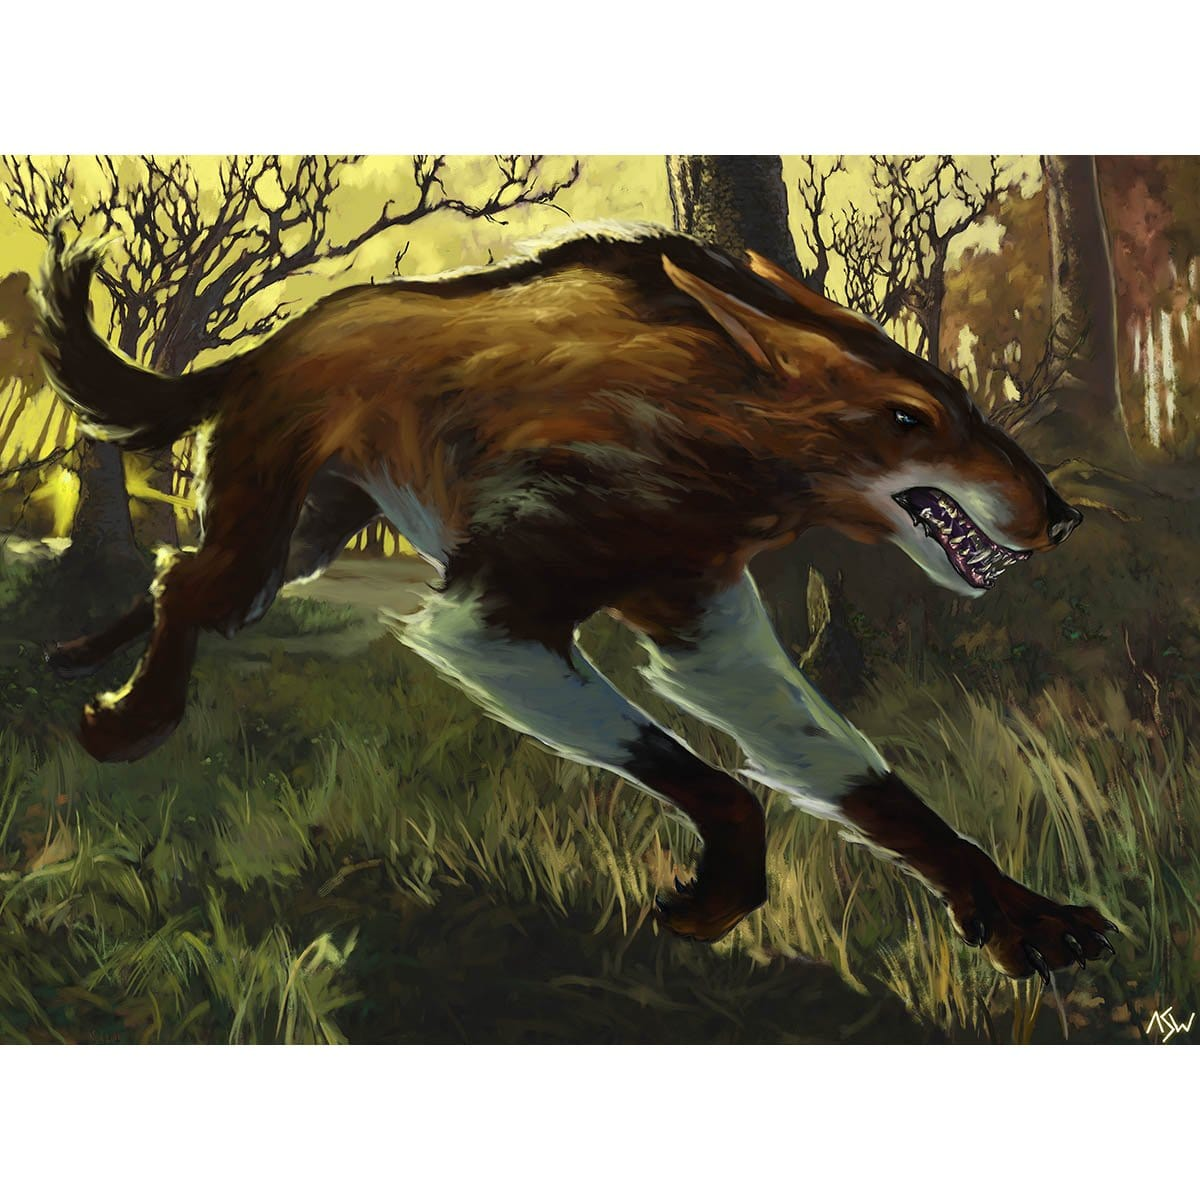 Wild Mongrel Print - Print - Original Magic Art - Accessories for Magic the Gathering and other card games